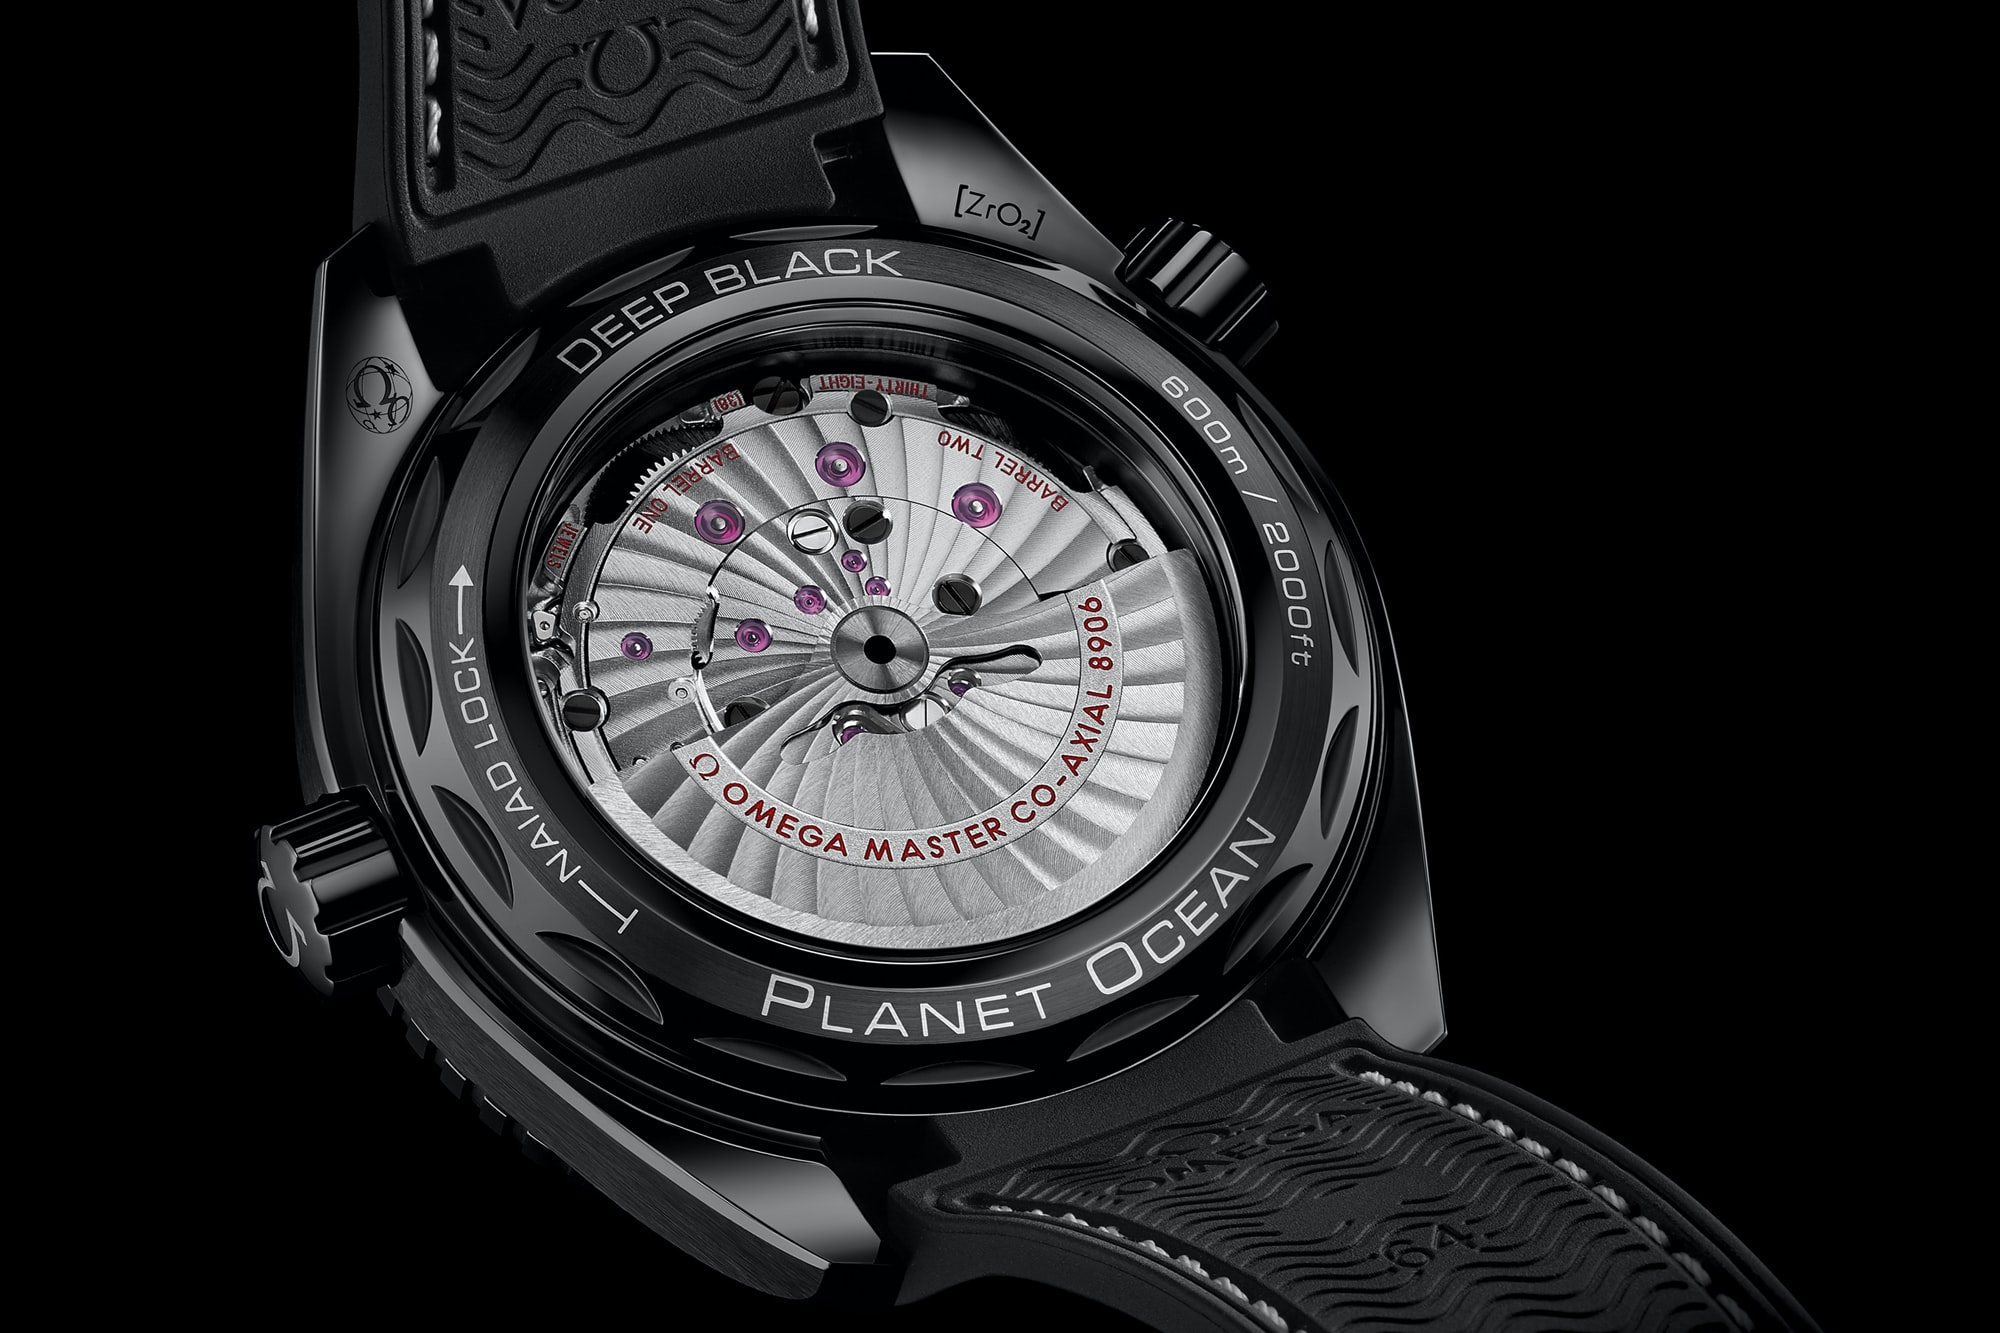 Introducing: The Omega Planet Ocean Deep Black Collection (Full Specs & Official Pricing) Introducing: The Omega Planet Ocean Deep Black Collection (Full Specs & Official Pricing) aaaaa